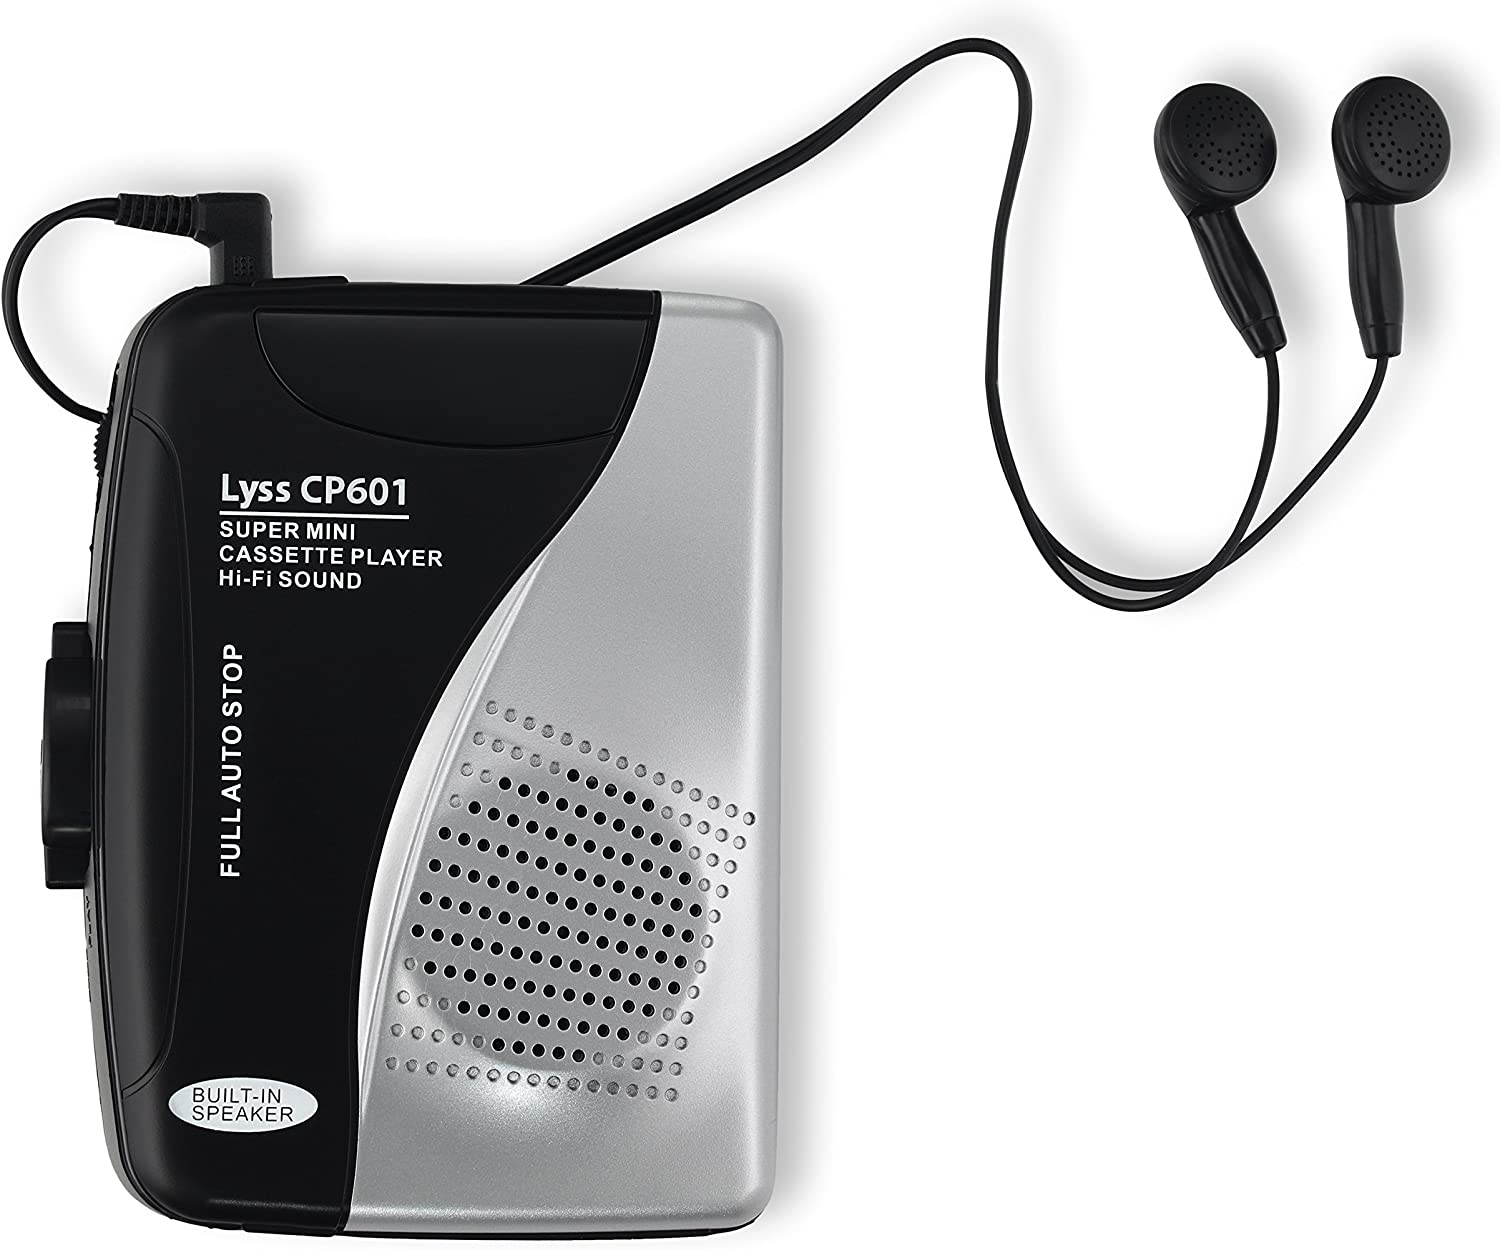 Lyss Electronics CP601 Portable Cassette Player with Speaker